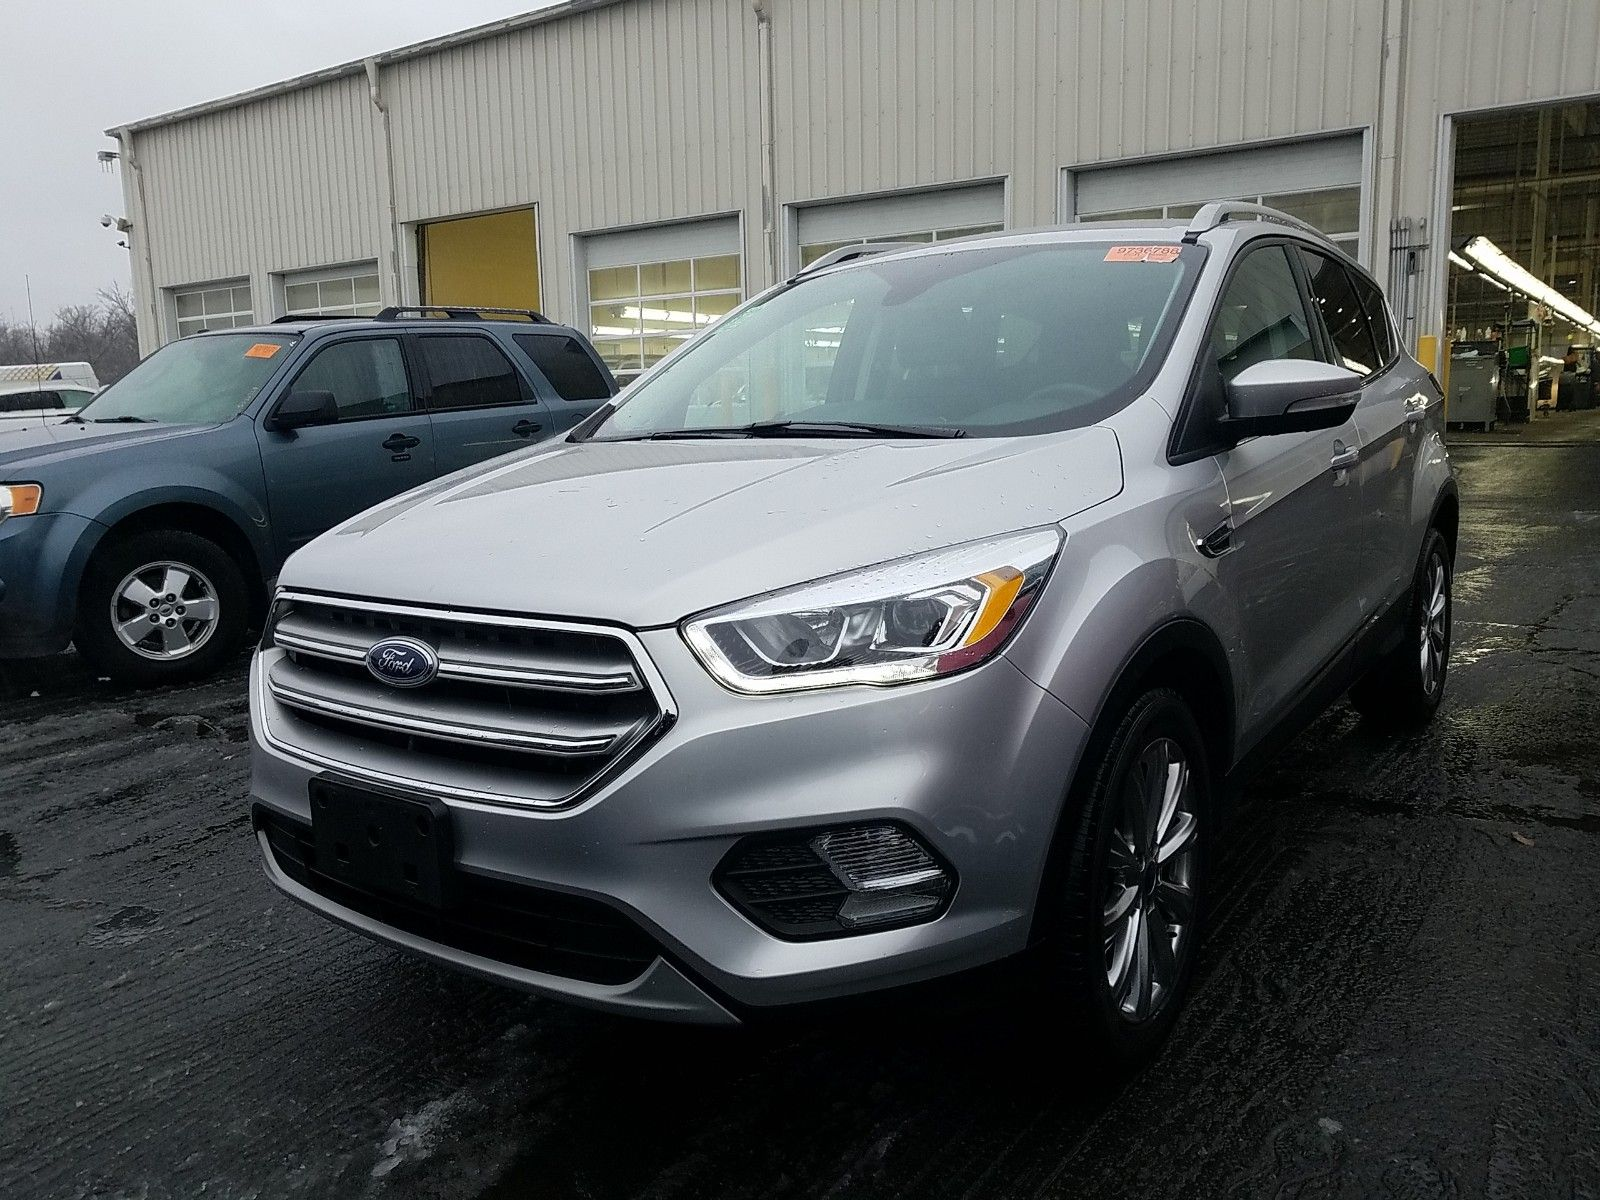 2017 Ford Escape 1.5. Lot 99911946326 Vin 1FMCU9JD7HUC30481